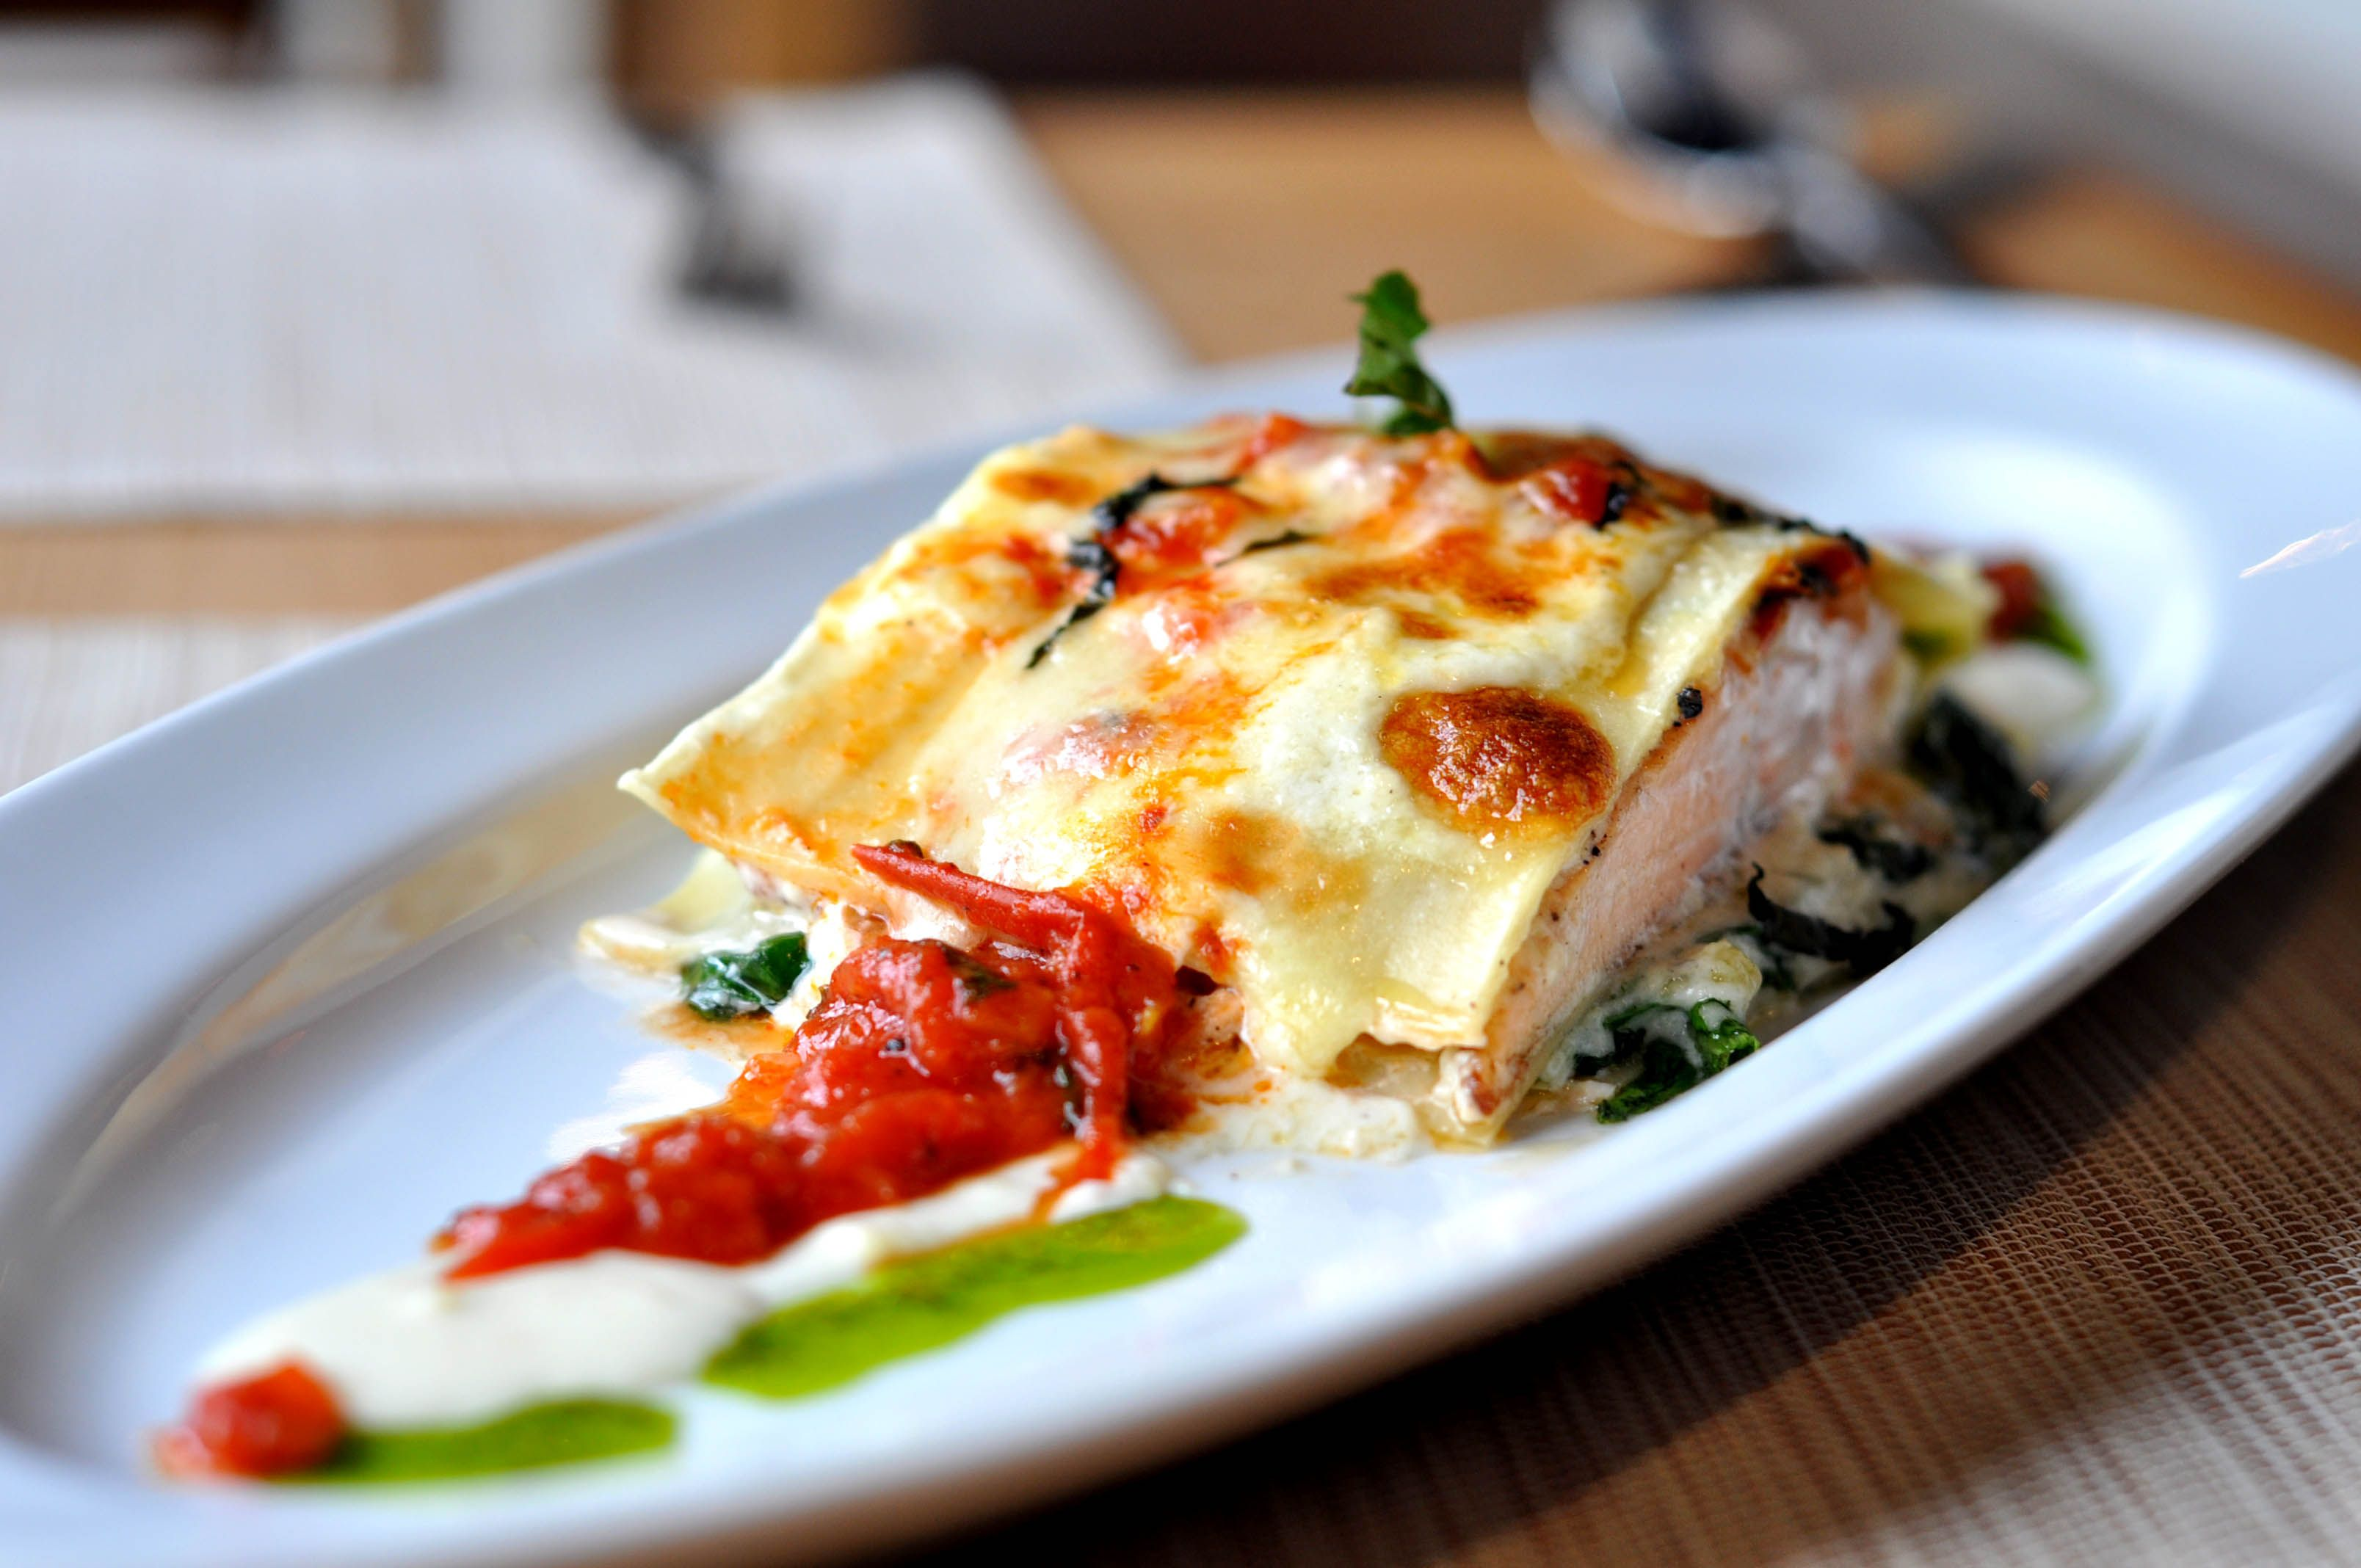 You Have To Try Last Minute Salmon Lasagna Ala Chef Gatot Available At Bianco Italian Resto At Atria Residences Gading Serpong